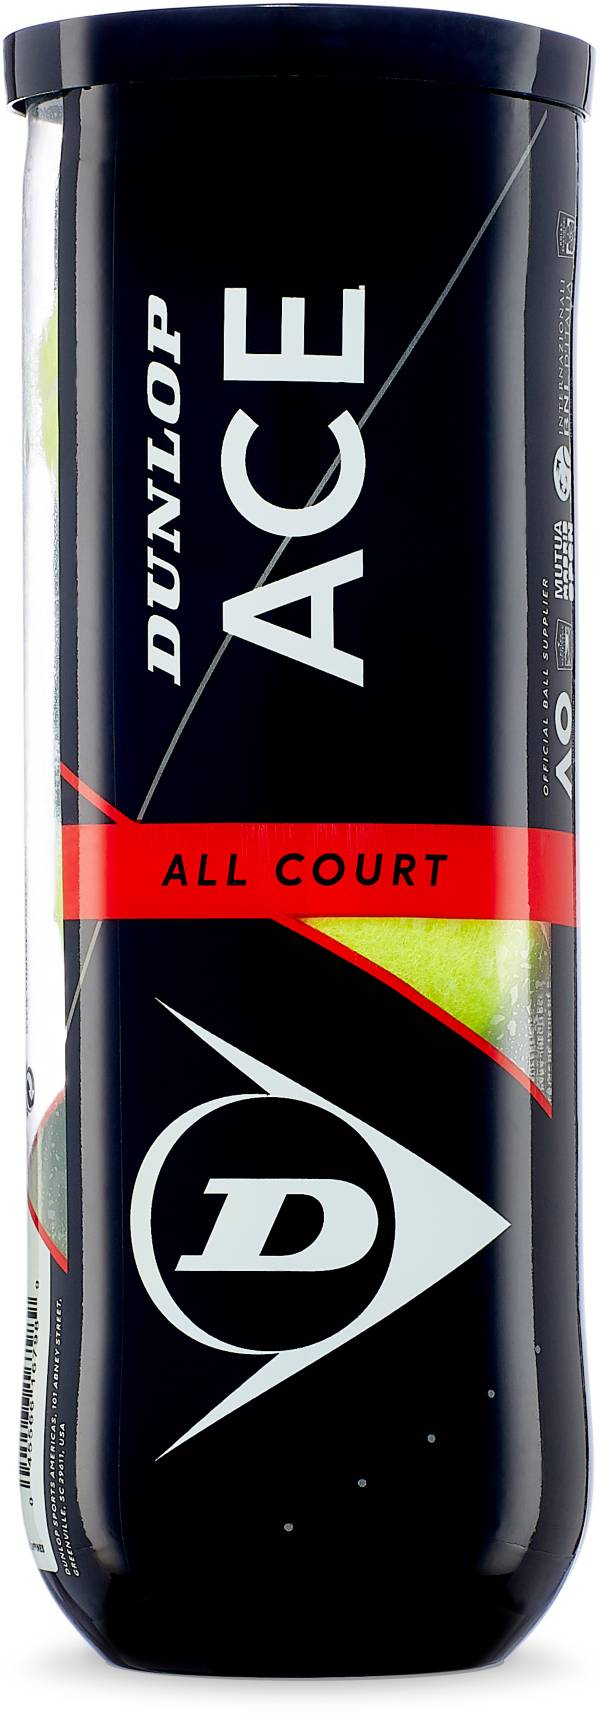 Dunlop Ace All Court 3-Ball Can product image